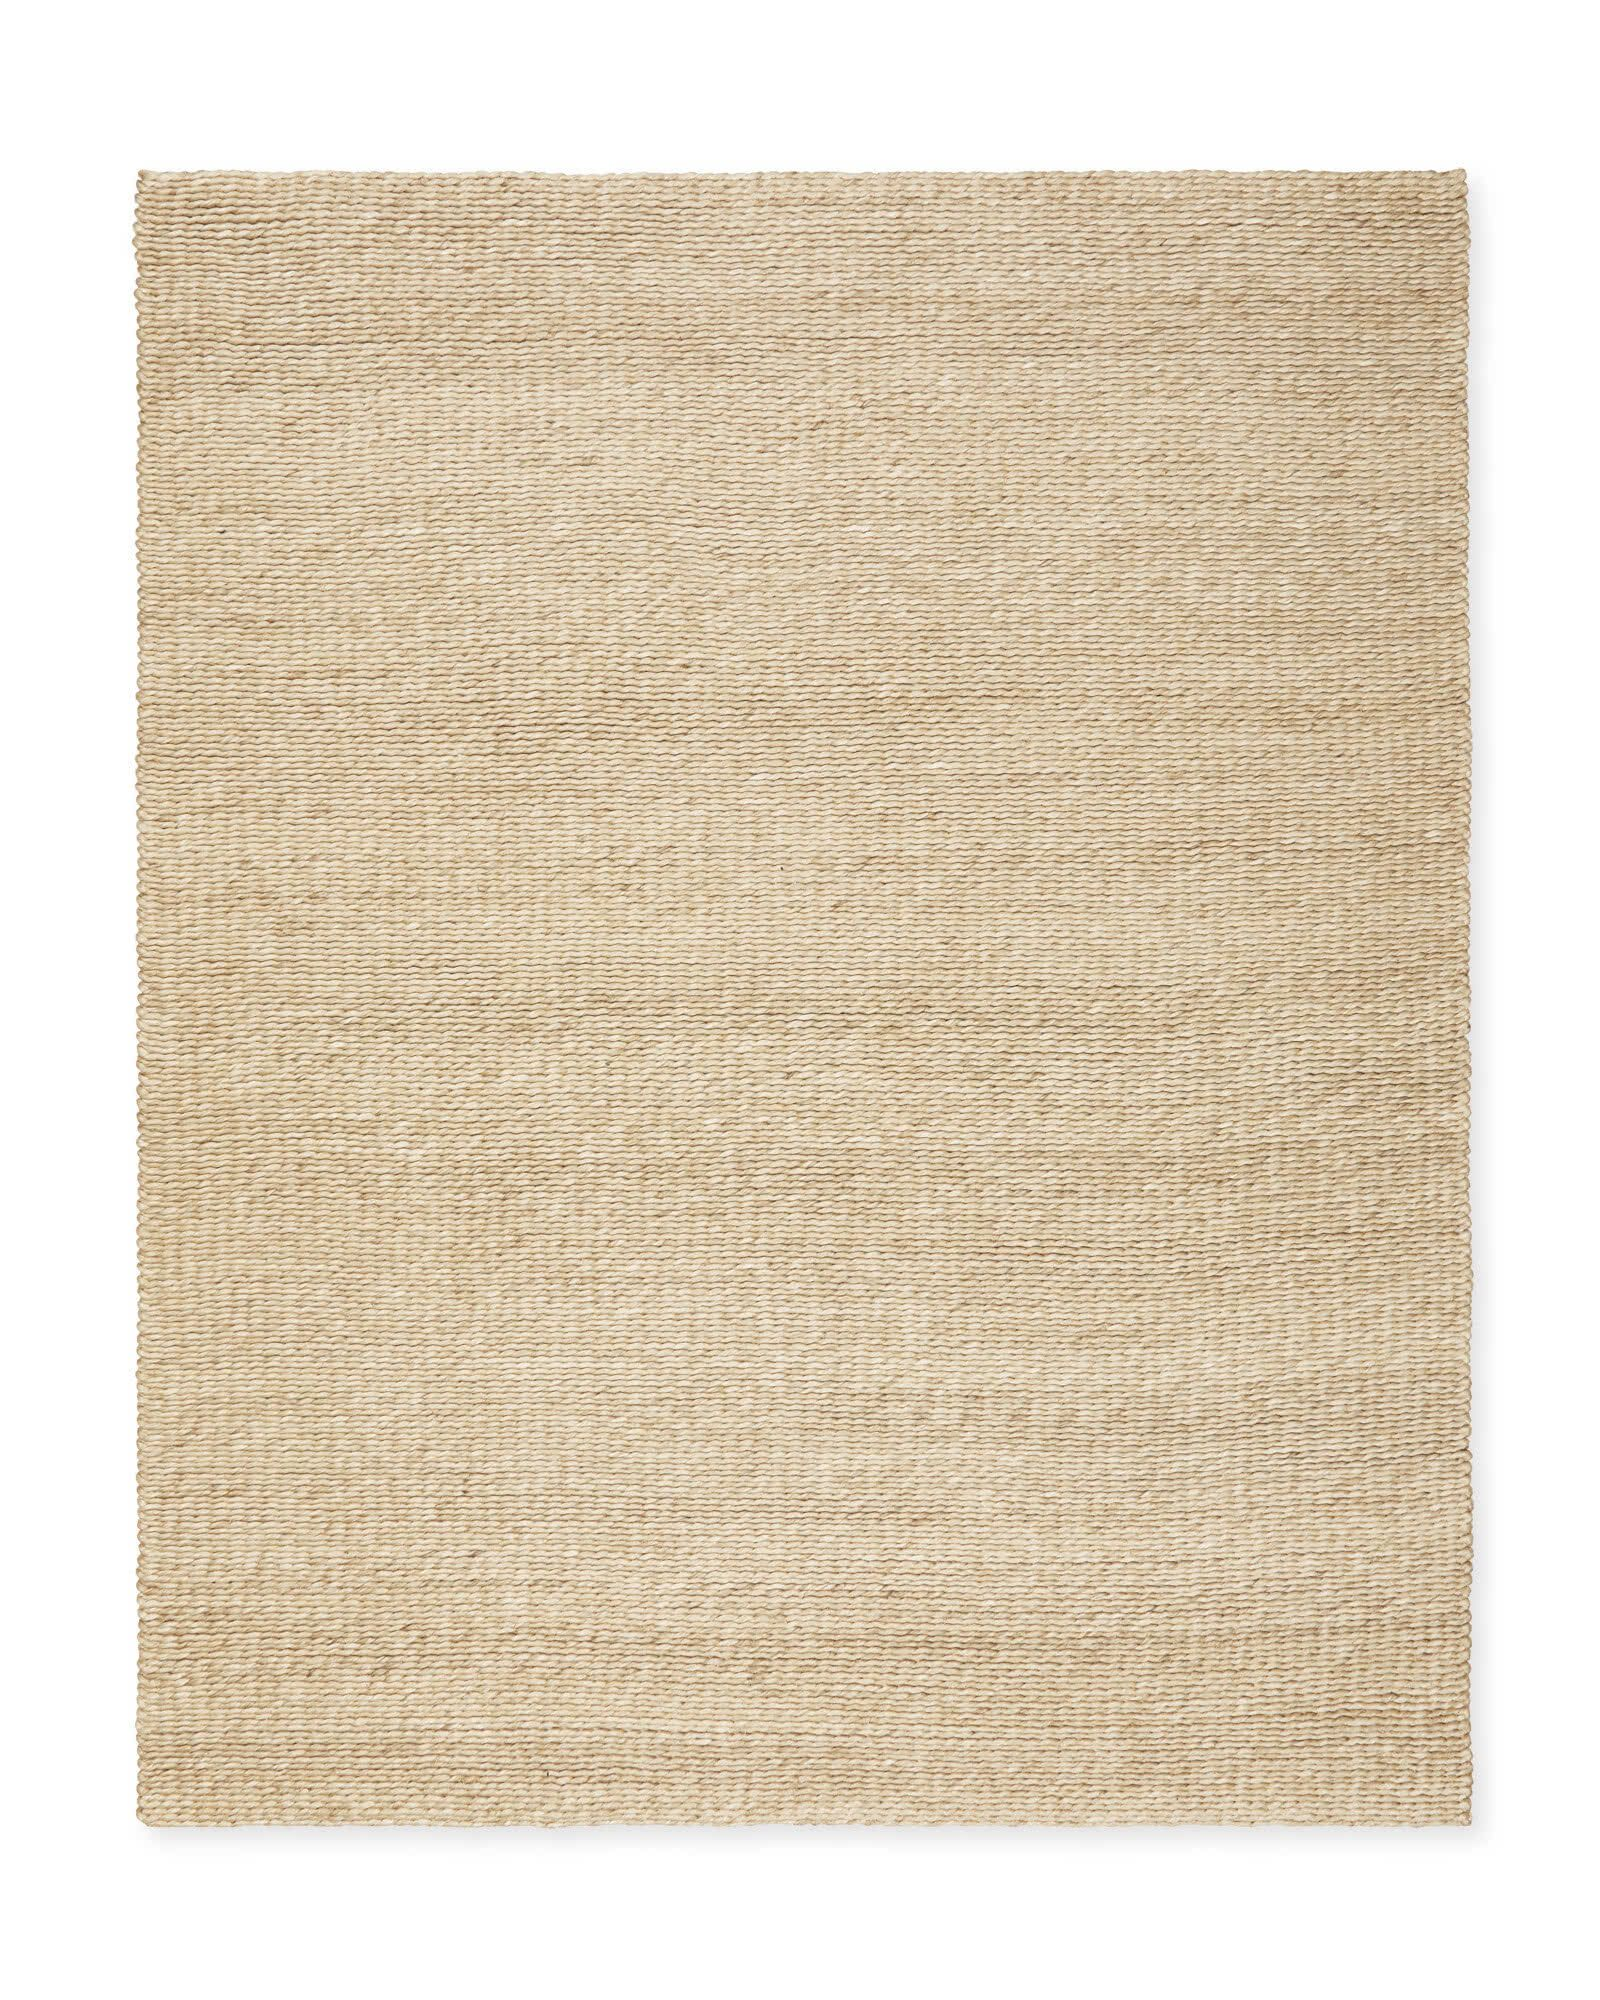 Samara Abaca Rug In 2020 Rugs Rug Guide Natural Rug